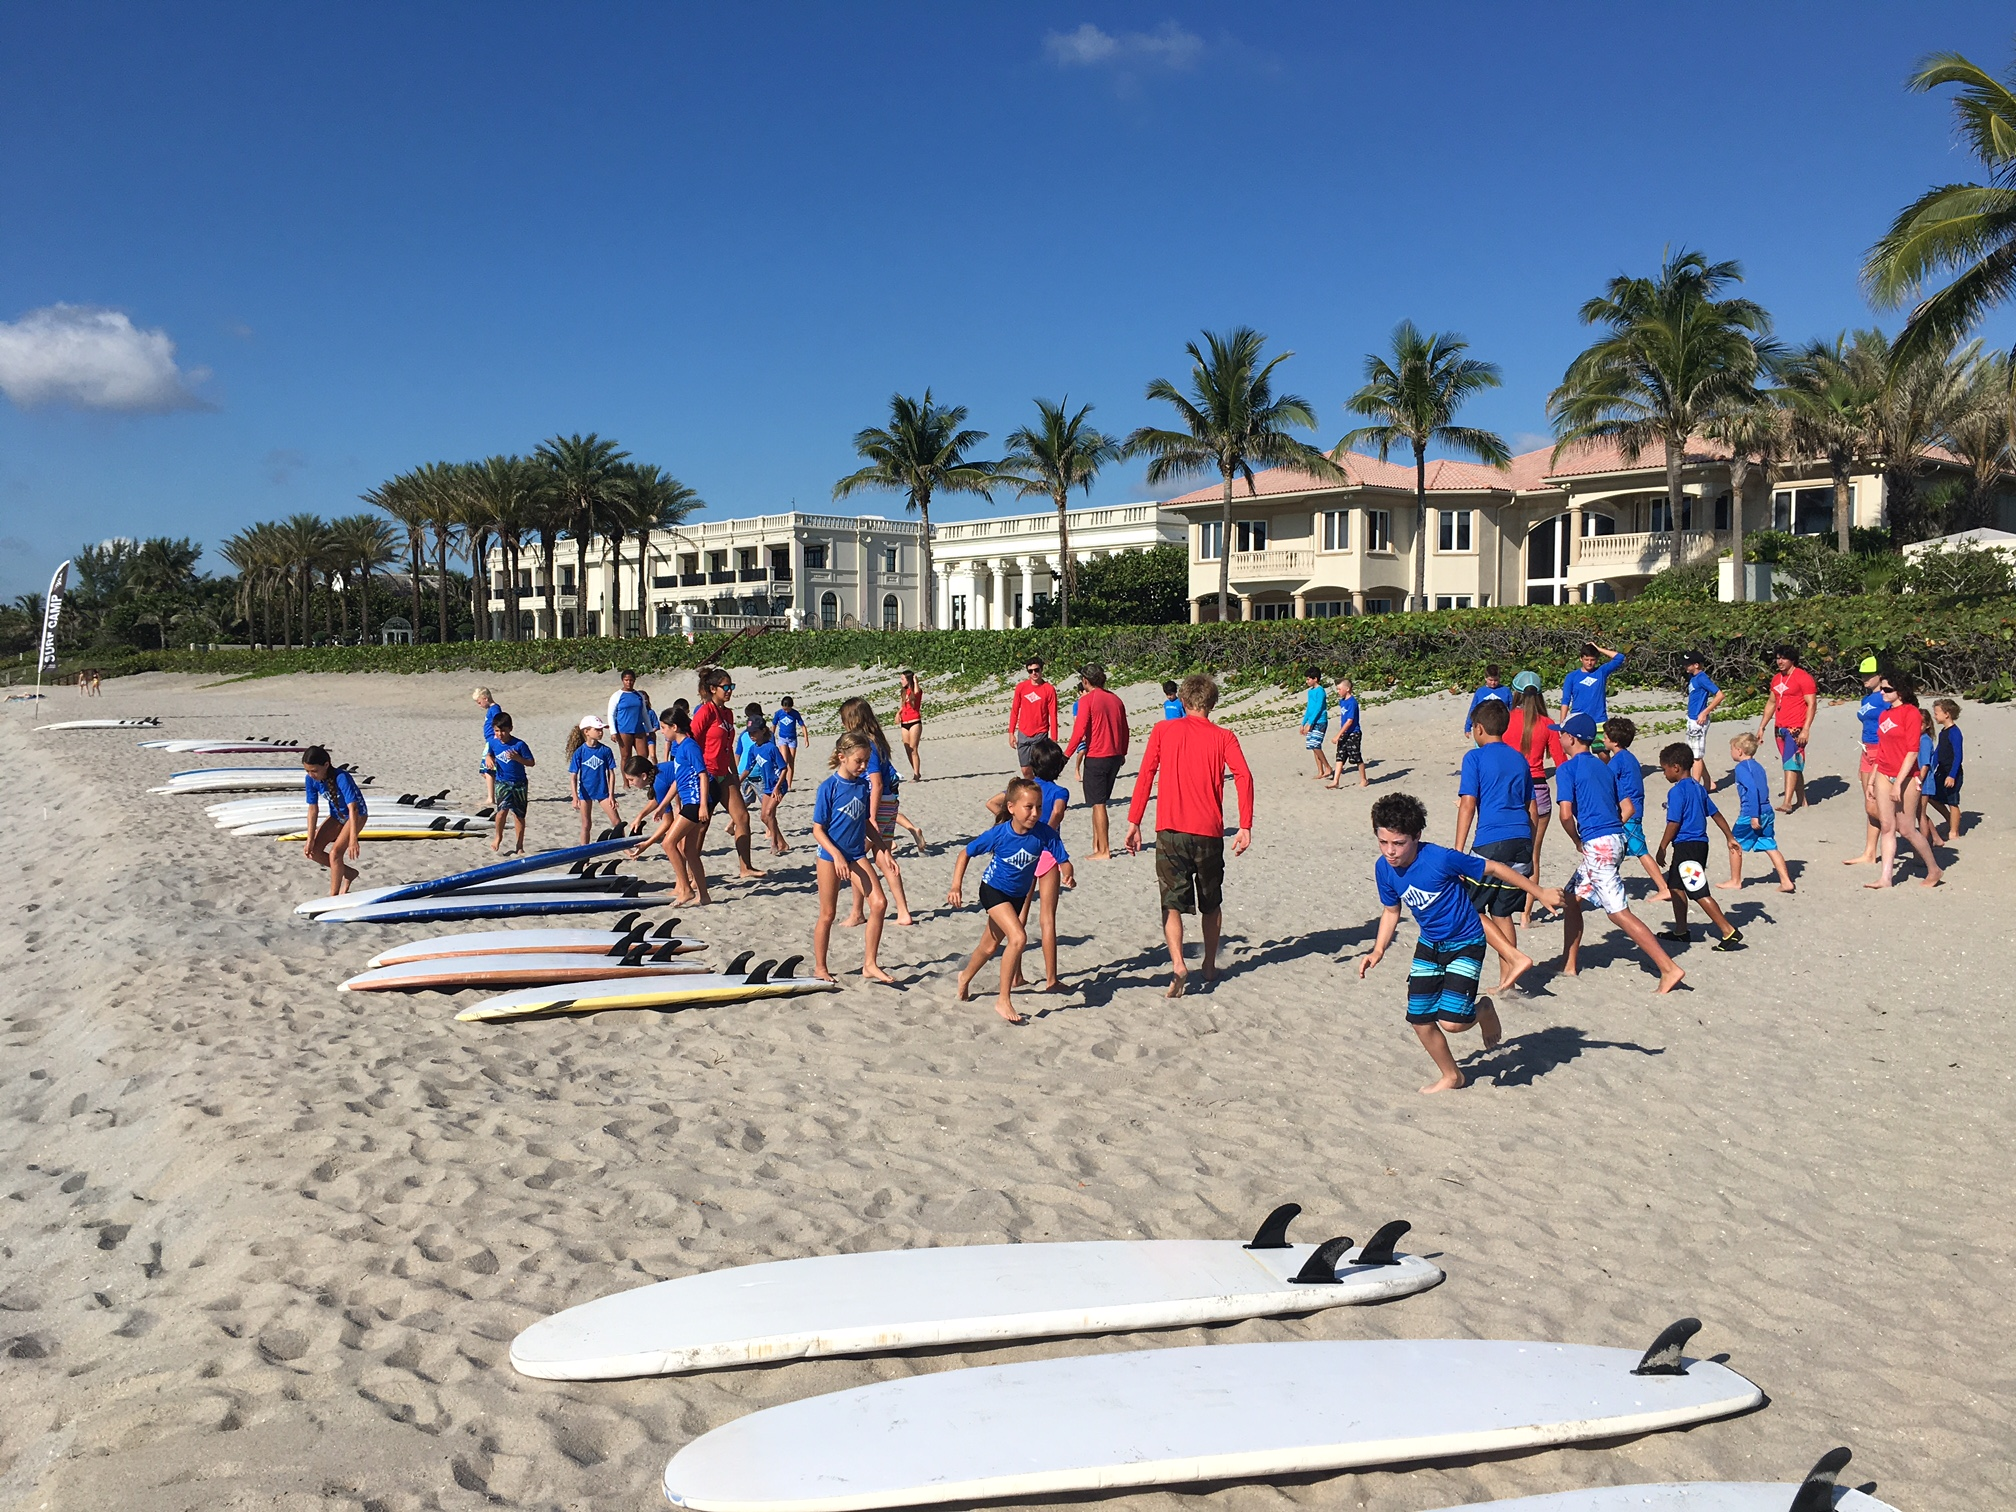 Our Mission is Simple - We are 100% focused on serving our communities by providing our students with proper safety, etiquette, and surfing/paddling technique.  Our goal is to help contribute to our community by bringing a little ALOHA to the kids, families, and adults, through Surfing and Ocean Safety Awareness! Hula Surf School is a Positive environment where we work together as a Family of Friends and welcome each other by showing the Aloha Spirit.With over 50 years of combined surfing and ocean safety experience, Hula Surf & Paddle School is committed to providing the ultimate surfing education experience for ALL AGES.